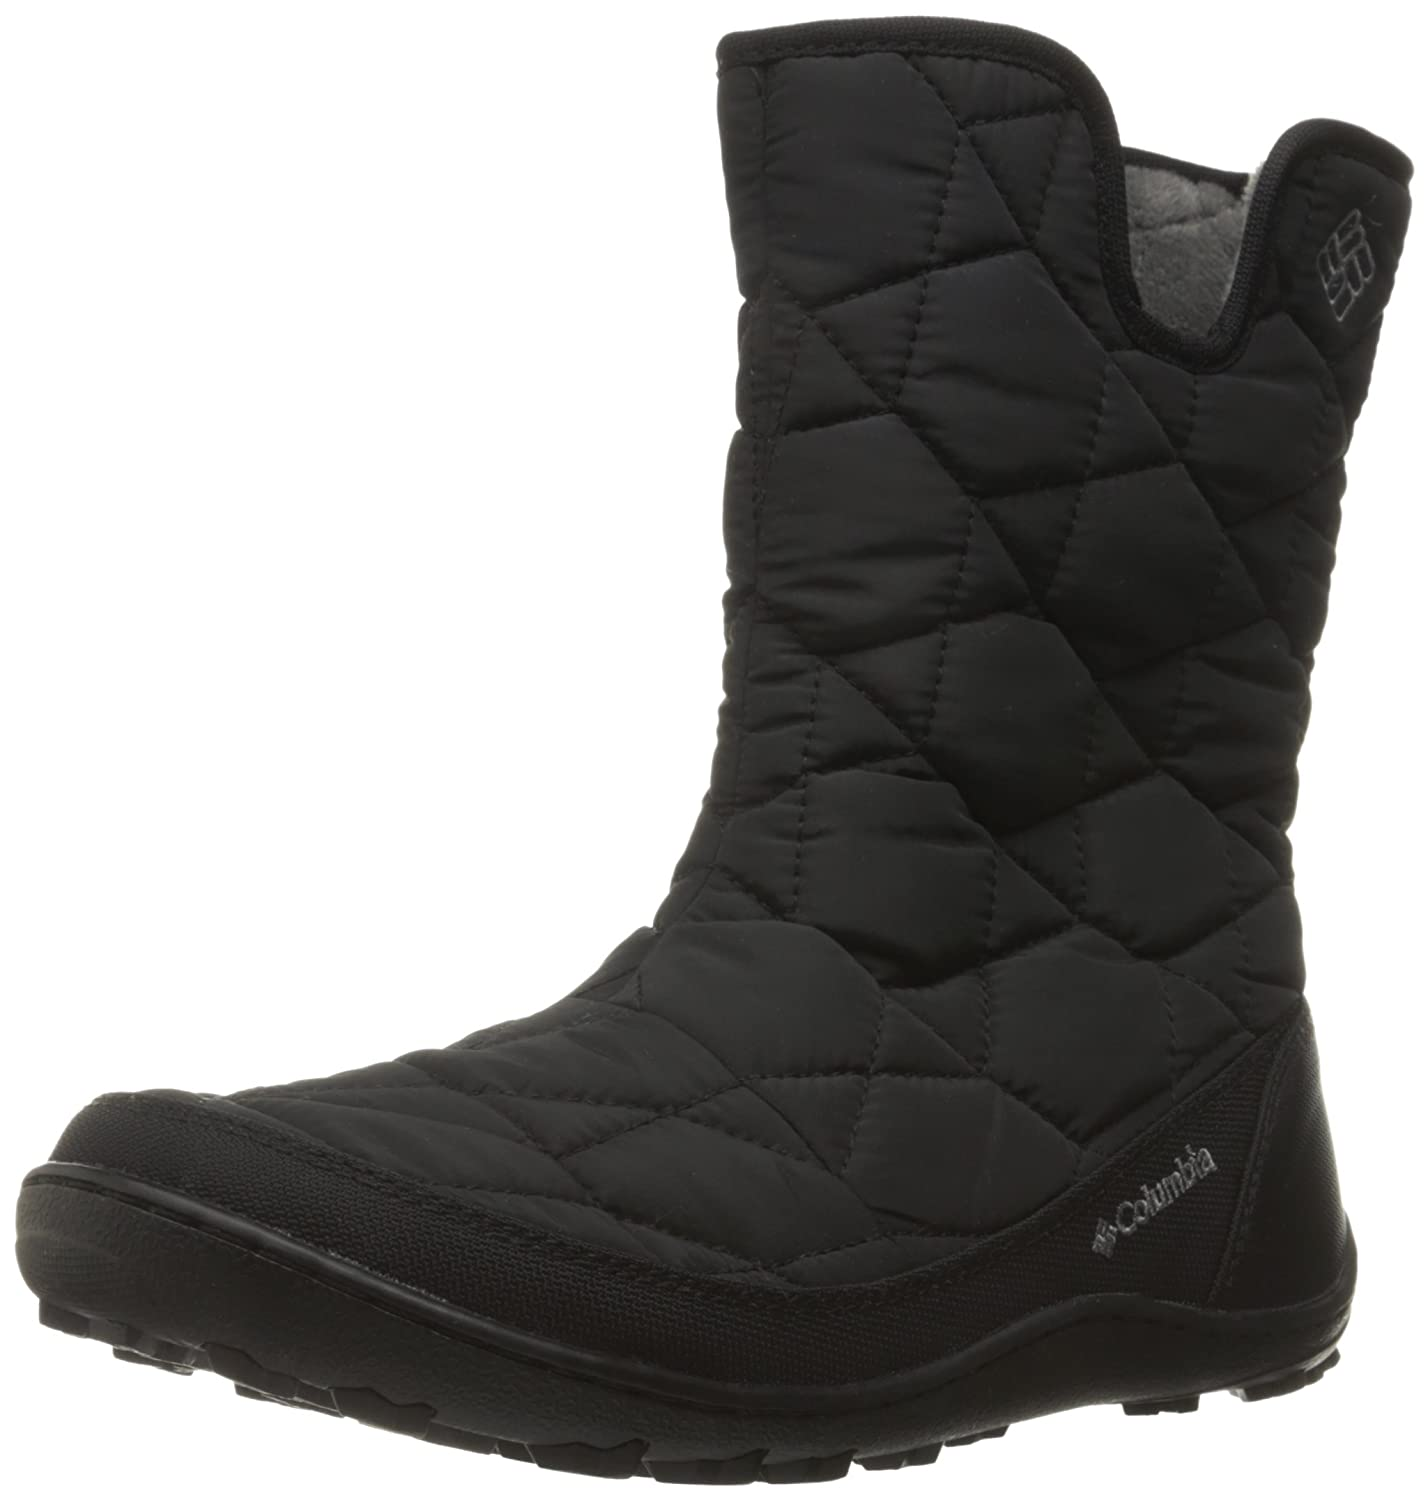 Columbia Women's Minx Slip Ii Omni-Heat Snow Boot B0183OL3N2 9 B(M) US|Black, Quarry